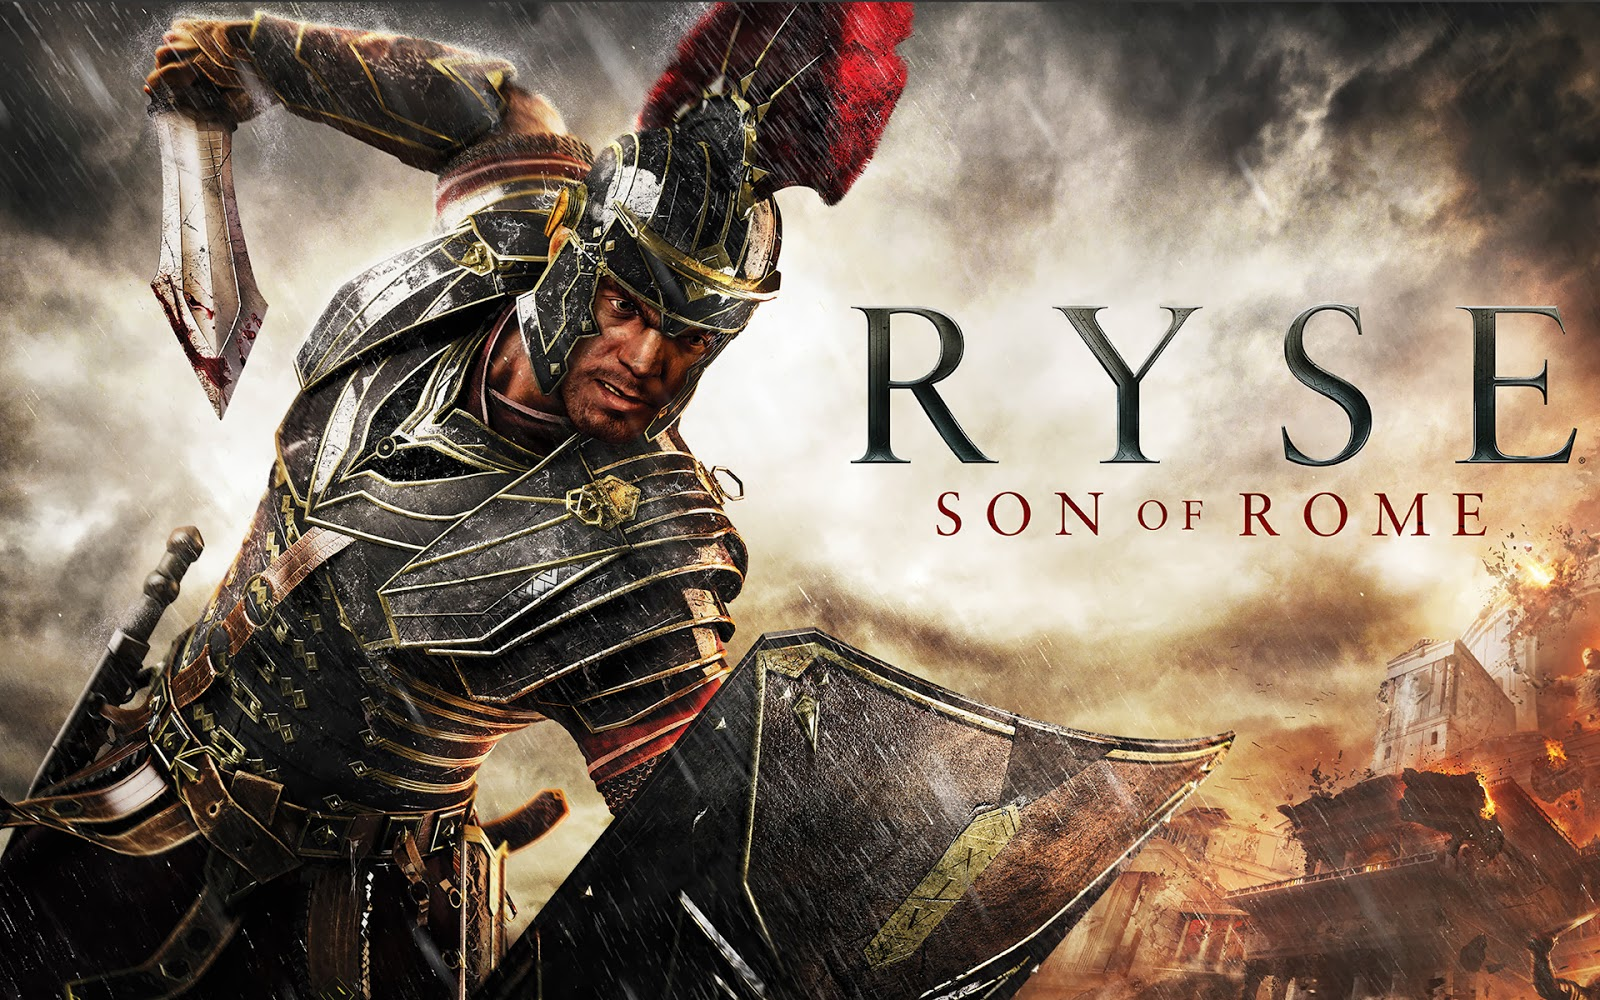 Ryse: Son of Rome – Xbox One Review